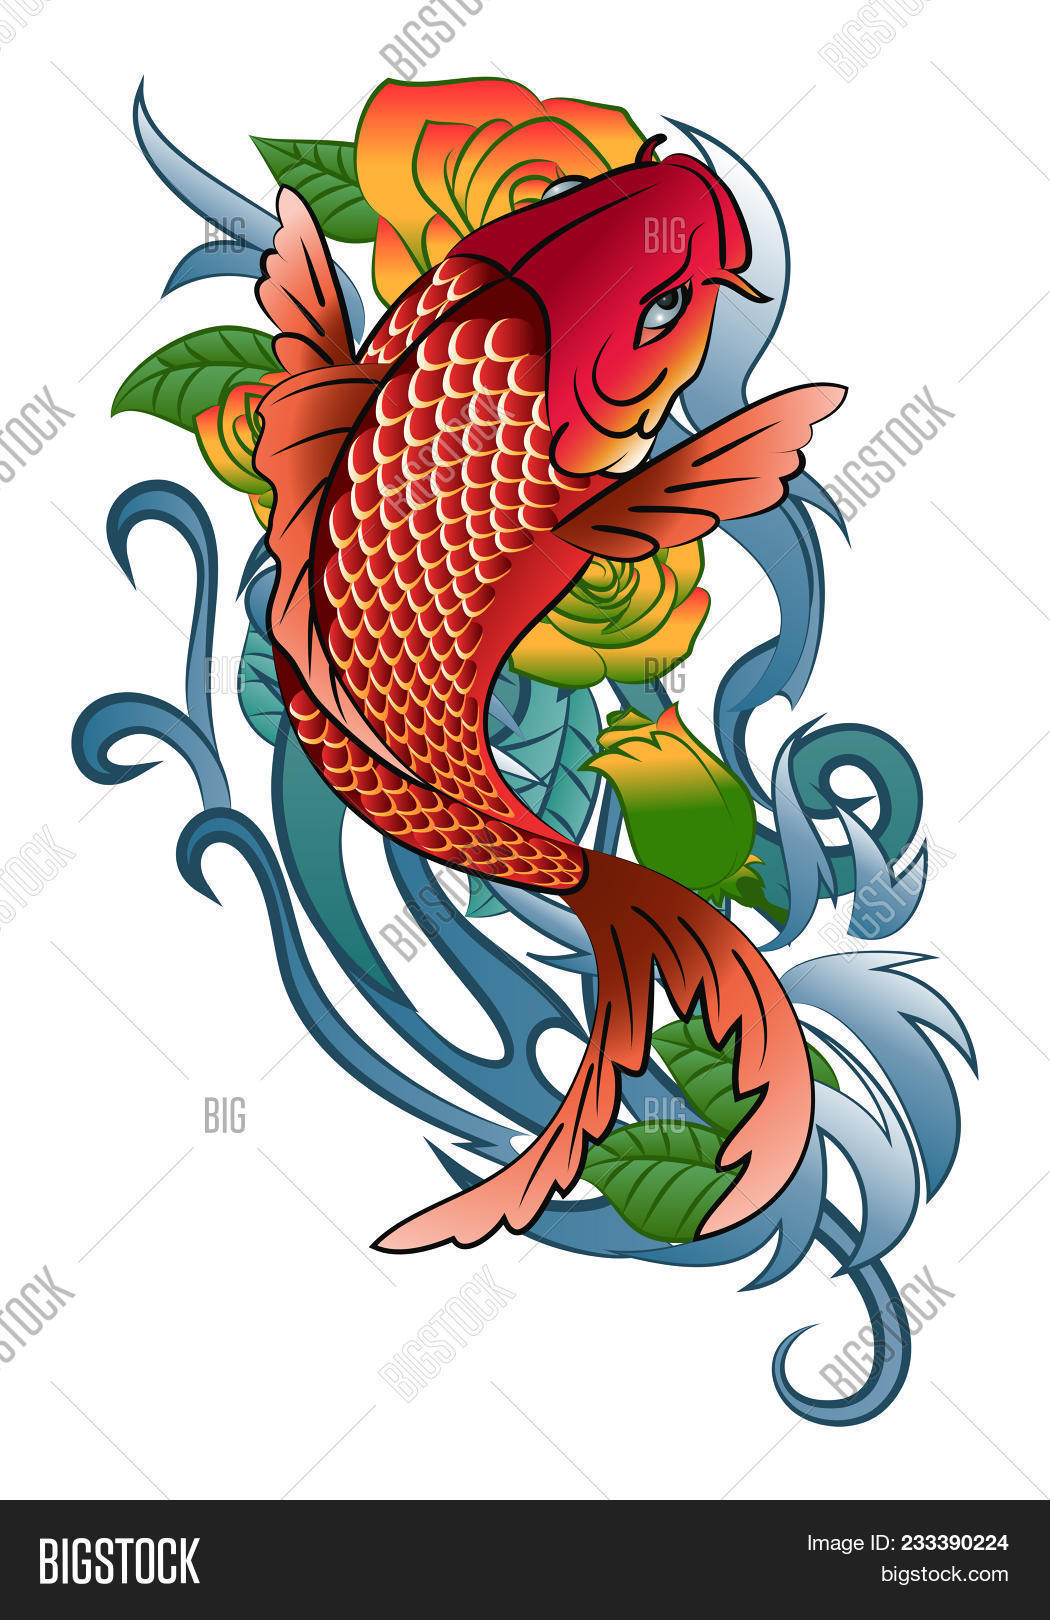 Illustration Koi Fish Image & Photo (Free Trial) | Bigstock